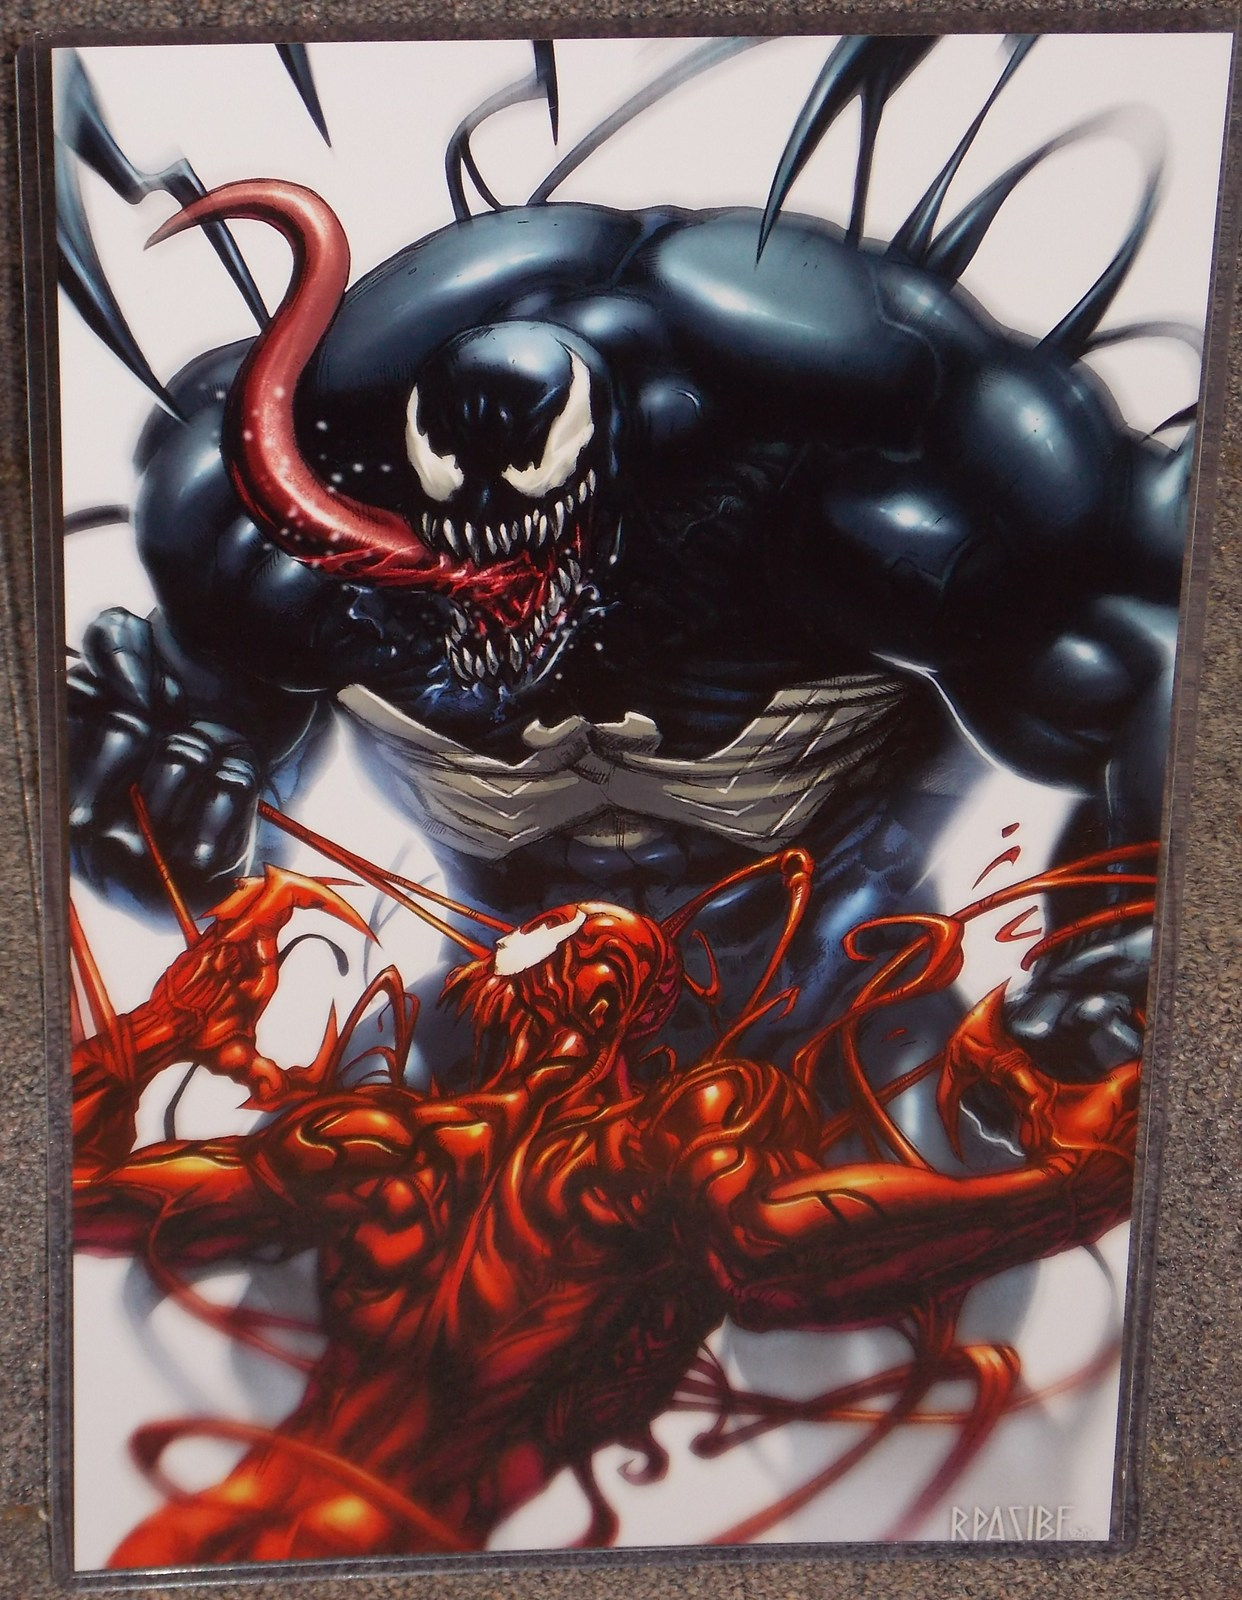 Primary image for Marvel Spider-Man Venom vs Carnage Glossy Print 11 x 17 In hard Plastic Sleeve